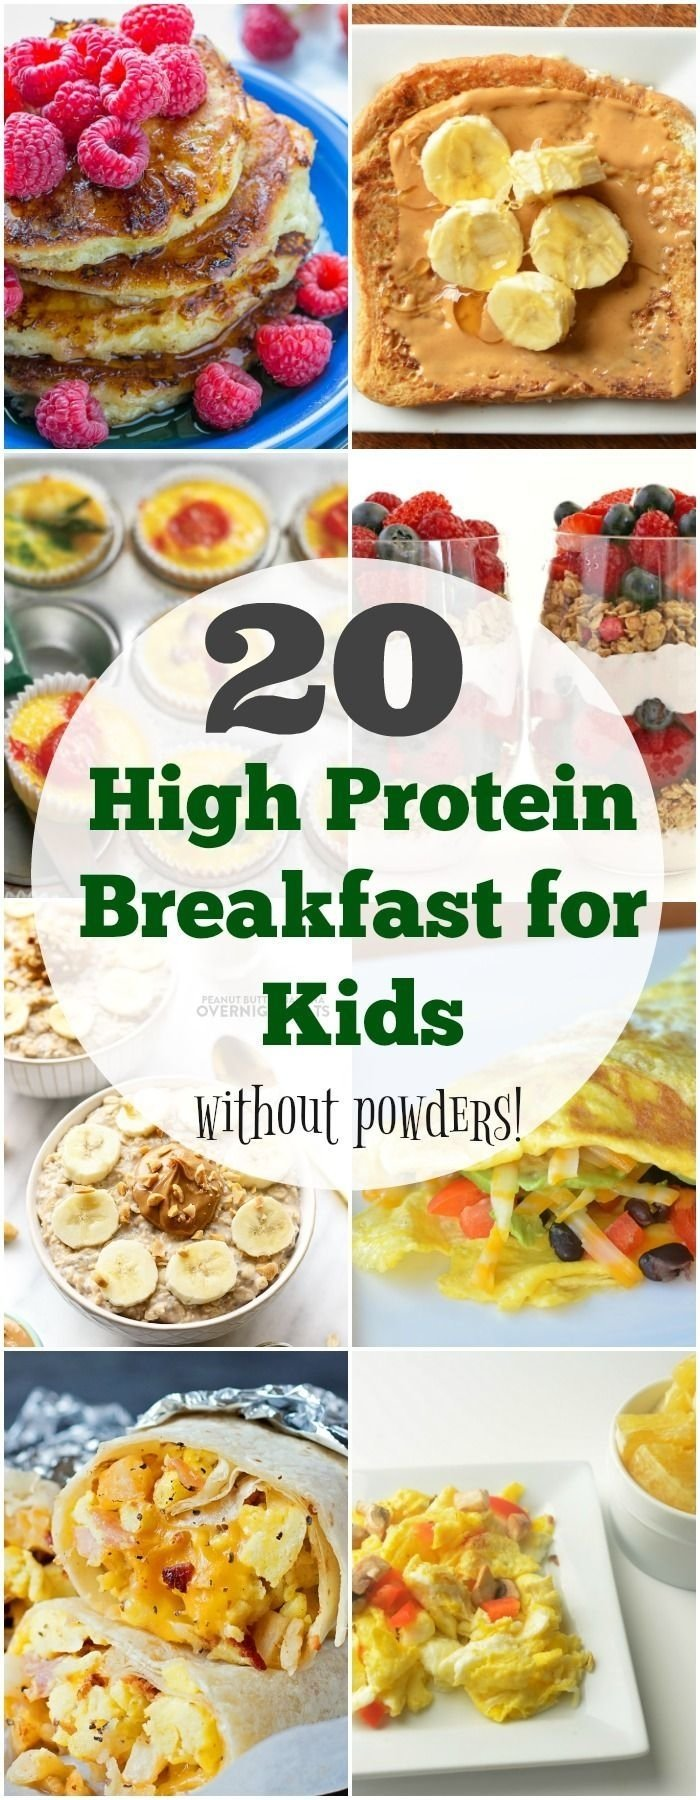 10 Lovely Breakfast Ideas For 1 Year Old 178 best baby eats images on pinterest recipes for children baby 1